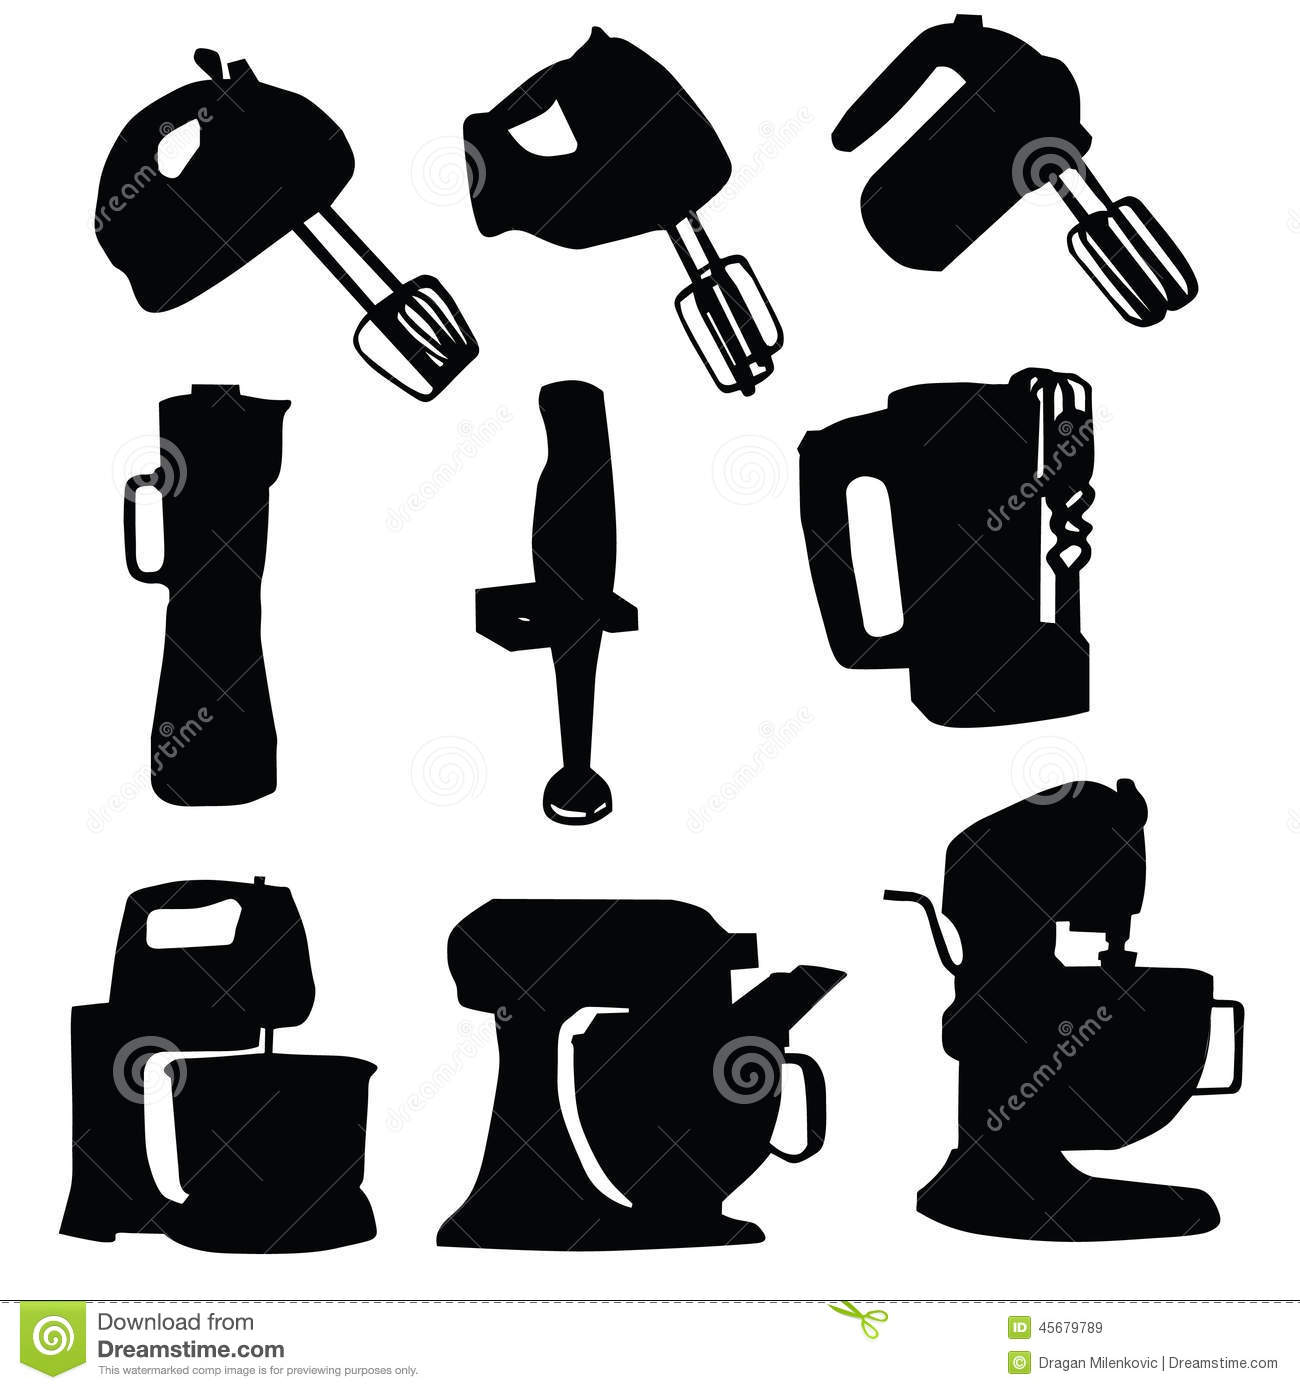 Hand Mixer Silhouette ~ Mixer silhouette gallery